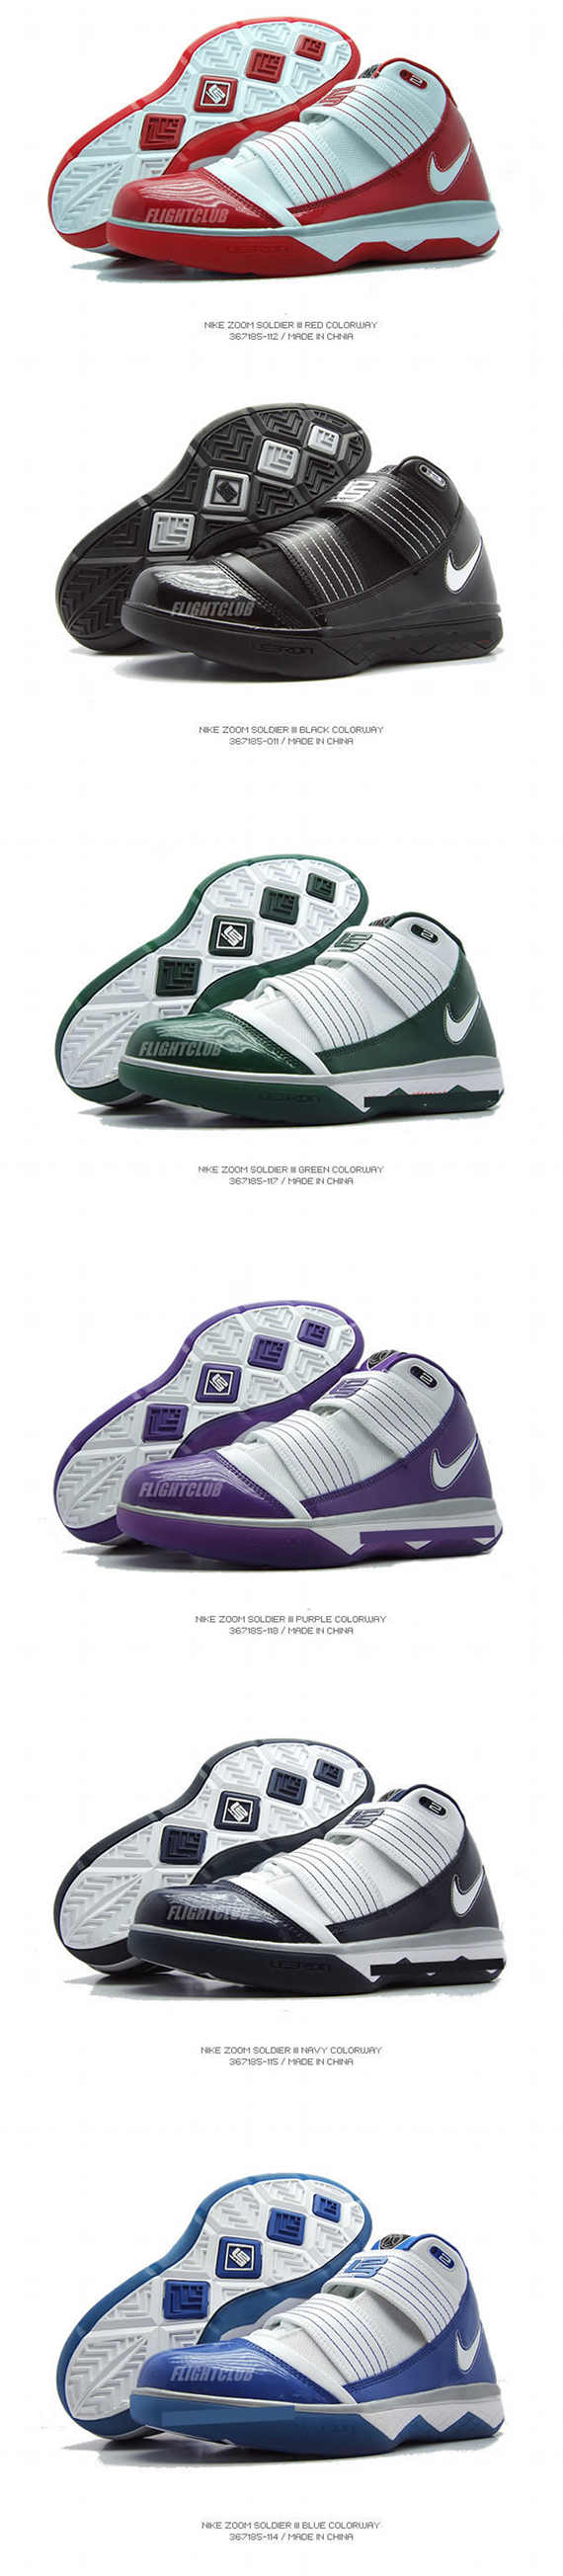 Nike Zoom Soldier 3 (III) - New Colorways